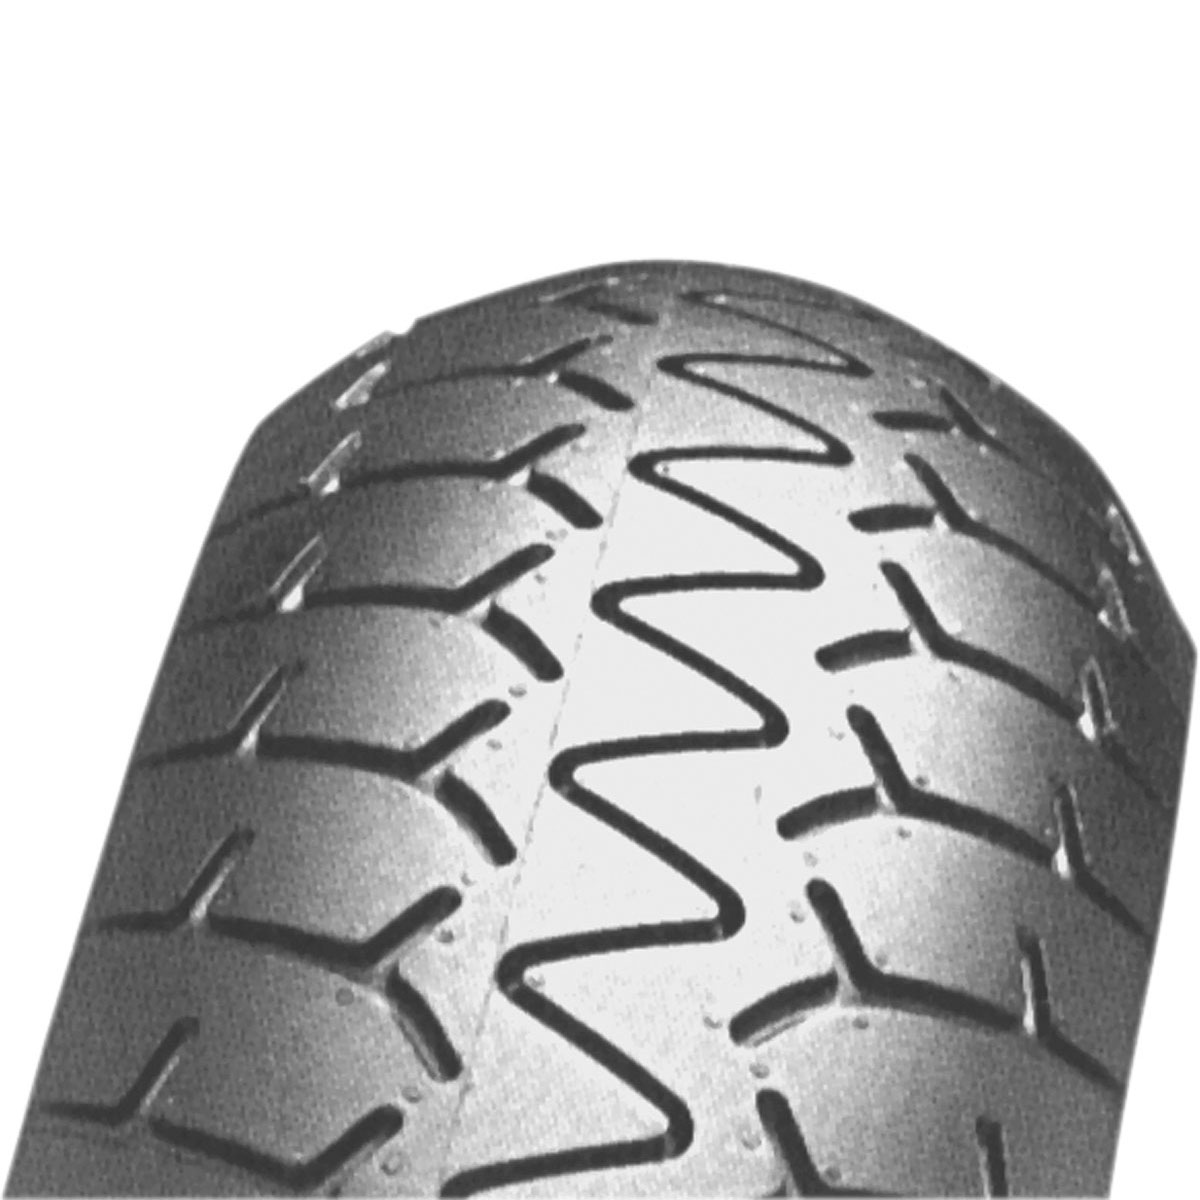 Get it delivered to your door - BRIDGESTONE G705 EXEDRA CRUISER FRONT TIRE - 3700 (EGP)